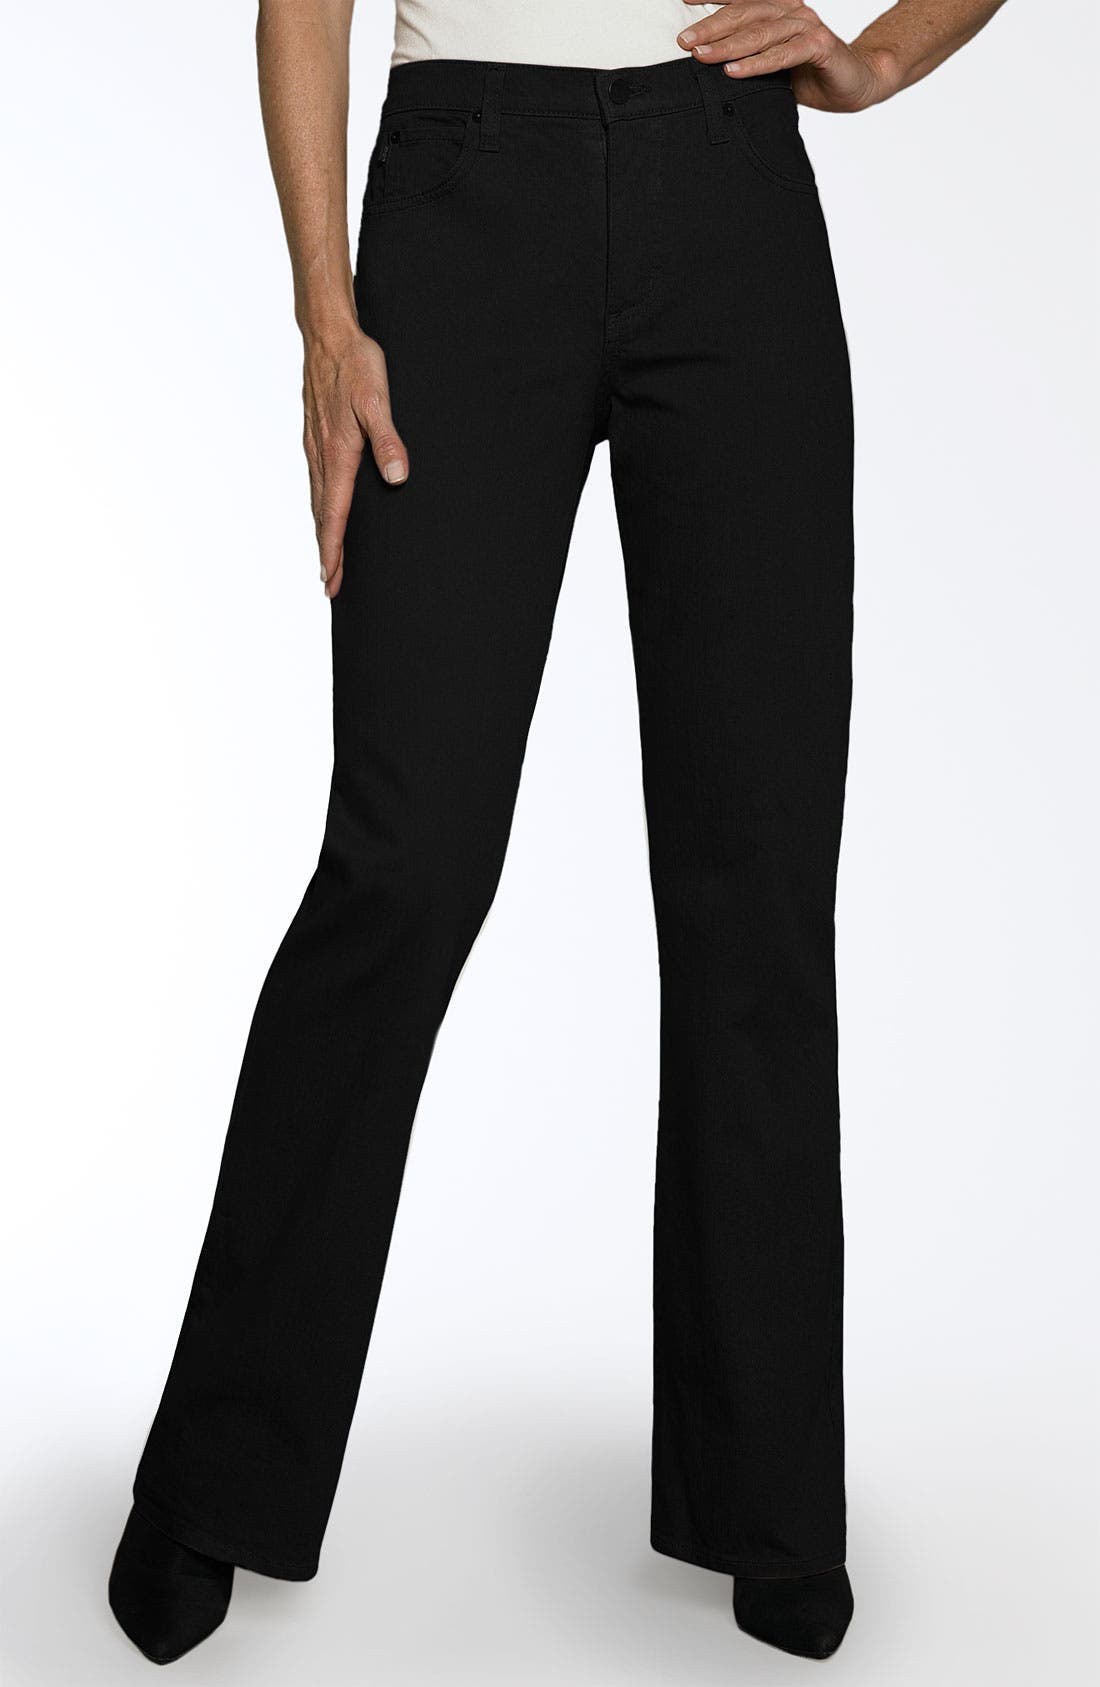 Main Image - NYDJ 'Sarah' Stretch Bootcut Jeans (Regular & Petite)